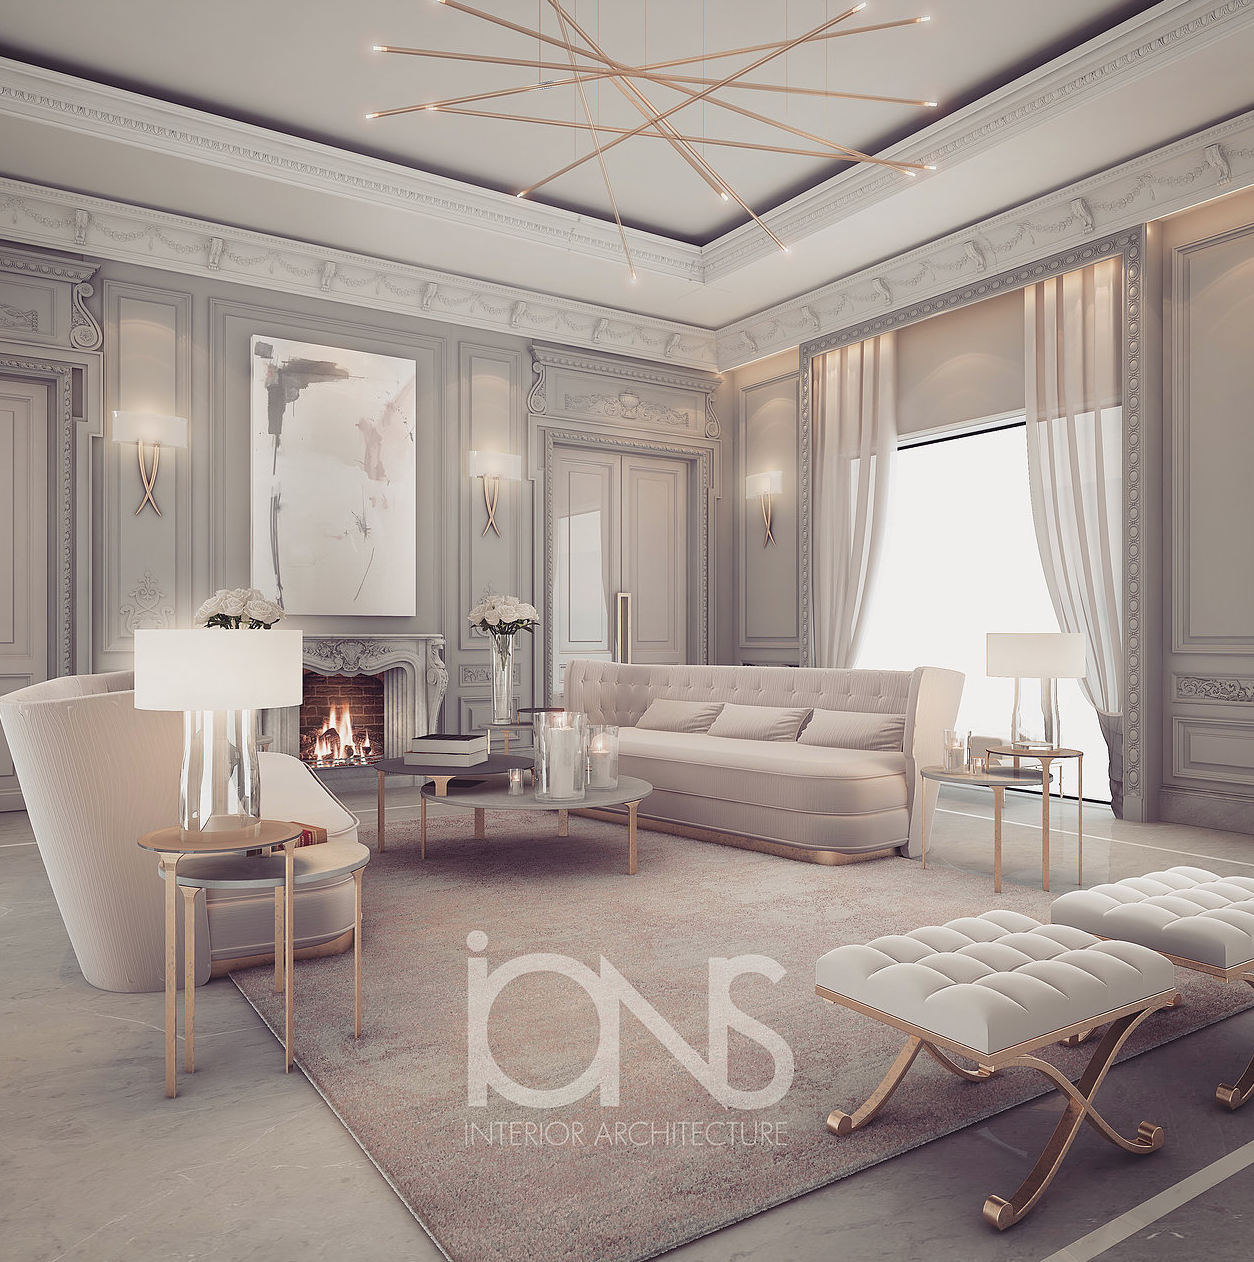 Ions Interior Design Dubai passion4fashion: ions design dubai